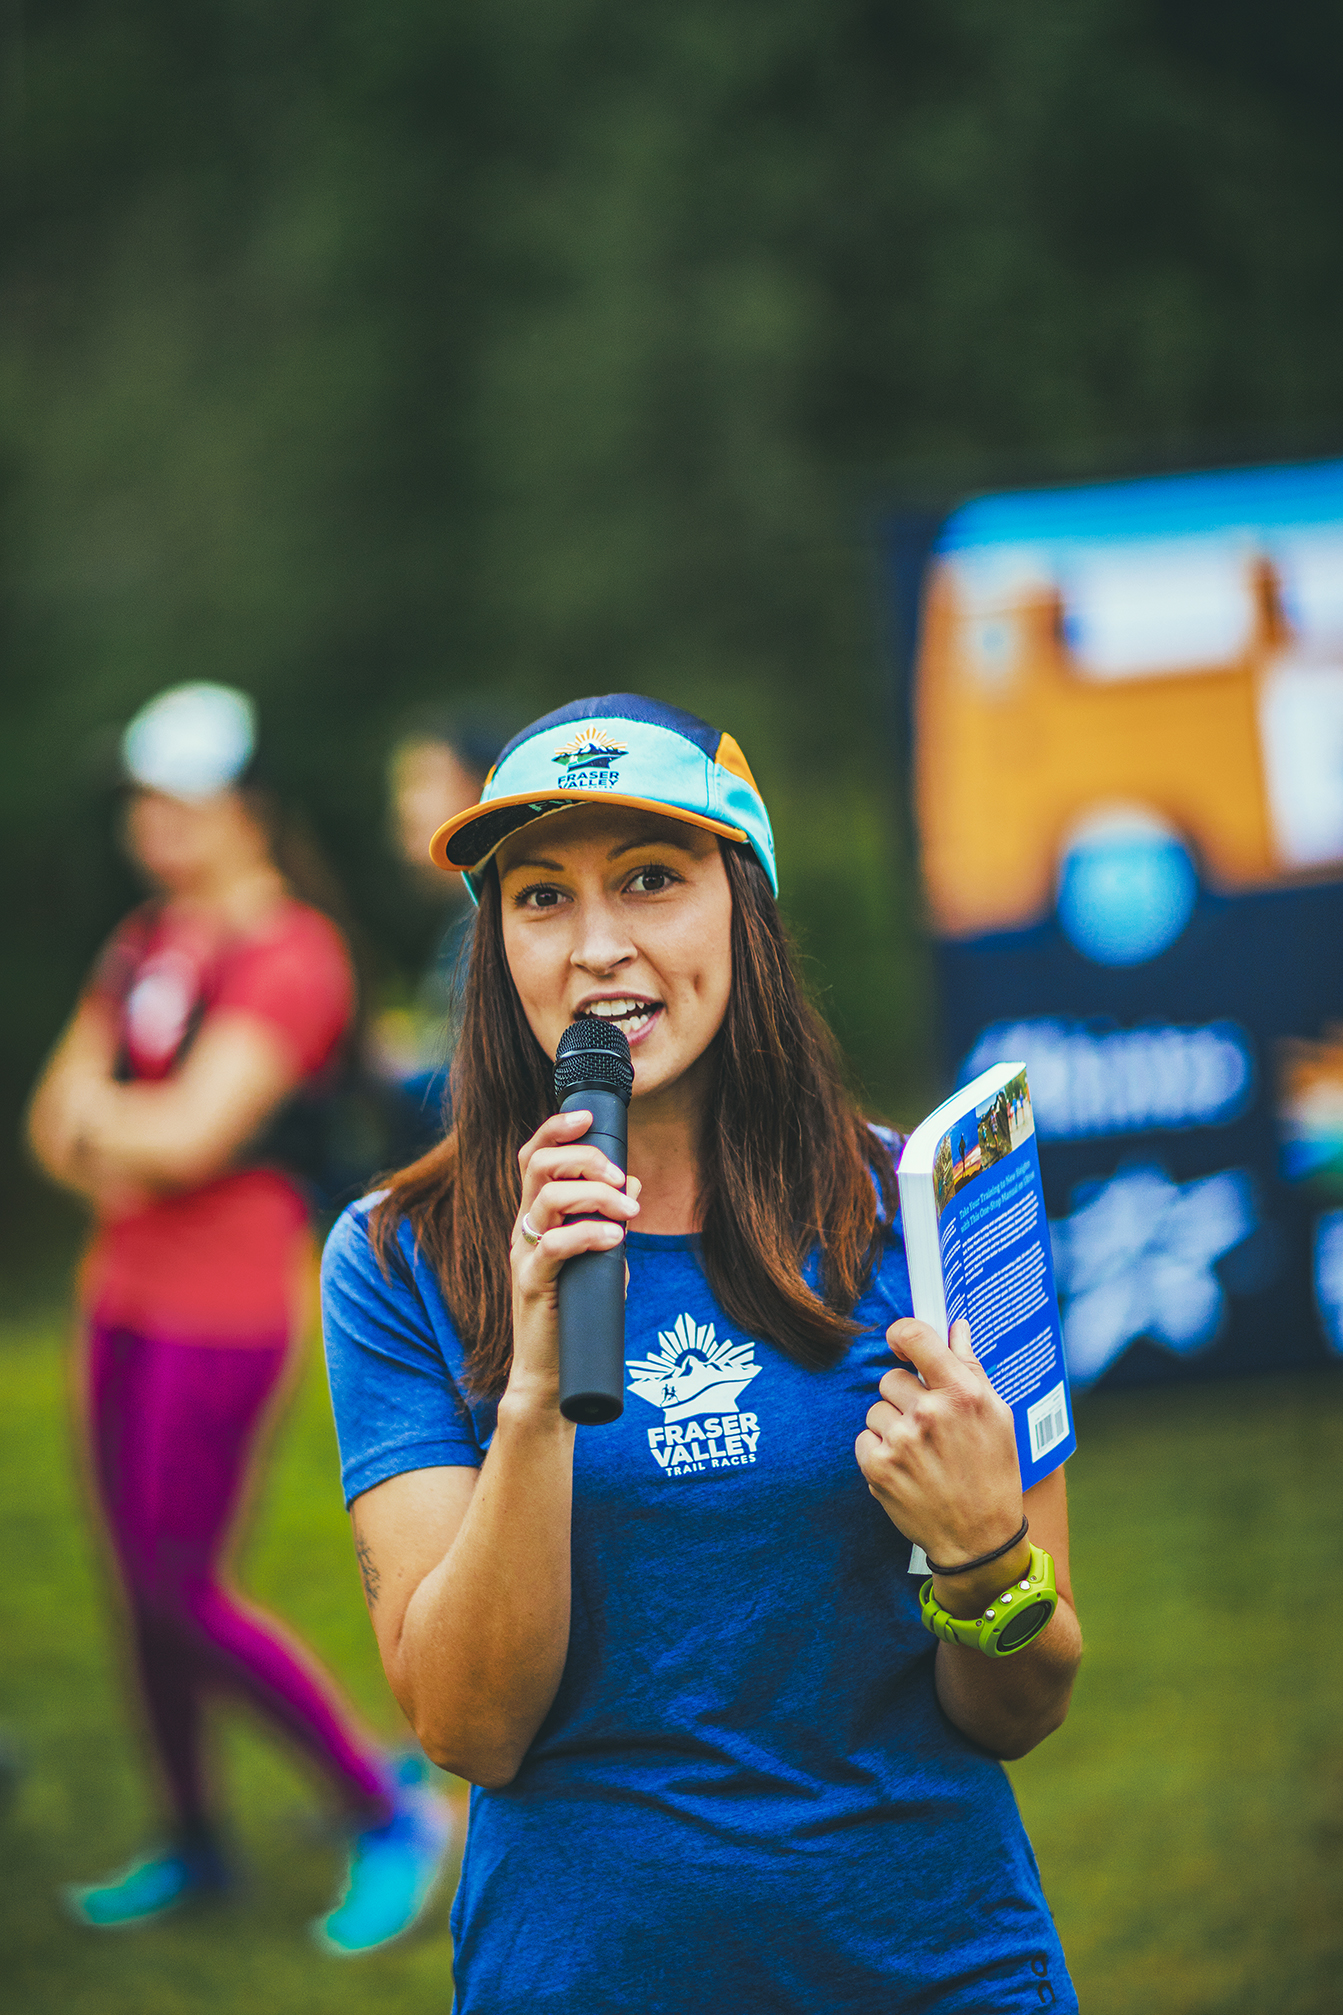 Fraser Valley Trail Races - Bear Mountain - IMG2_2394 by  Brice Ferre Studio - Vancouver Portrait Adventure and Athlete Photographer.jpg